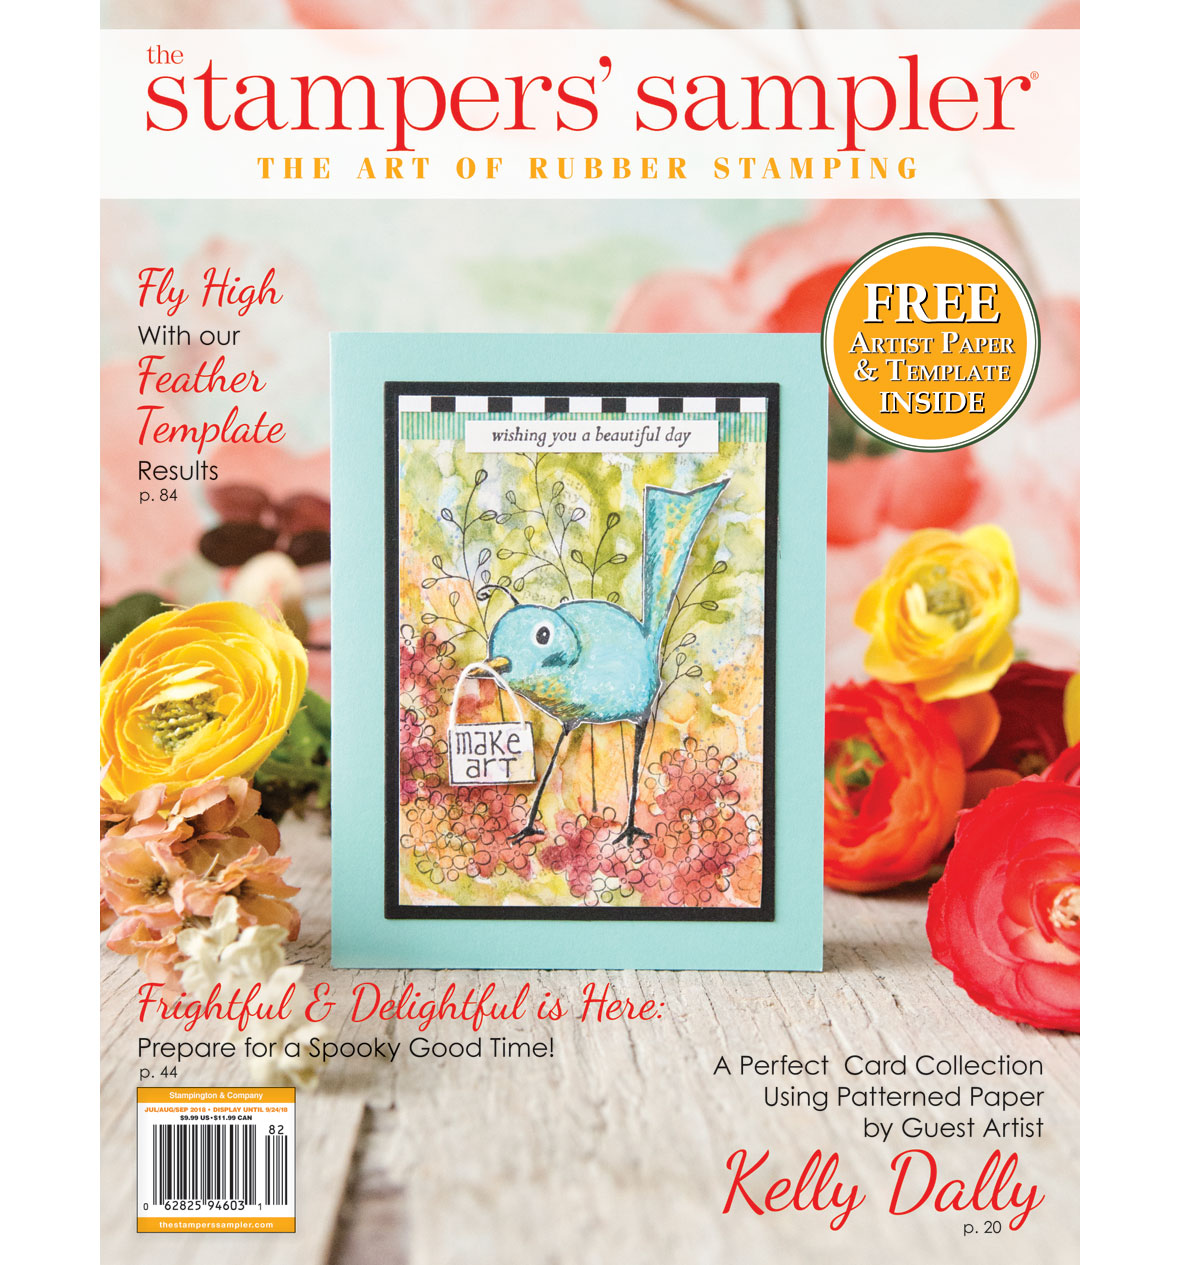 The Stampers' Sampler